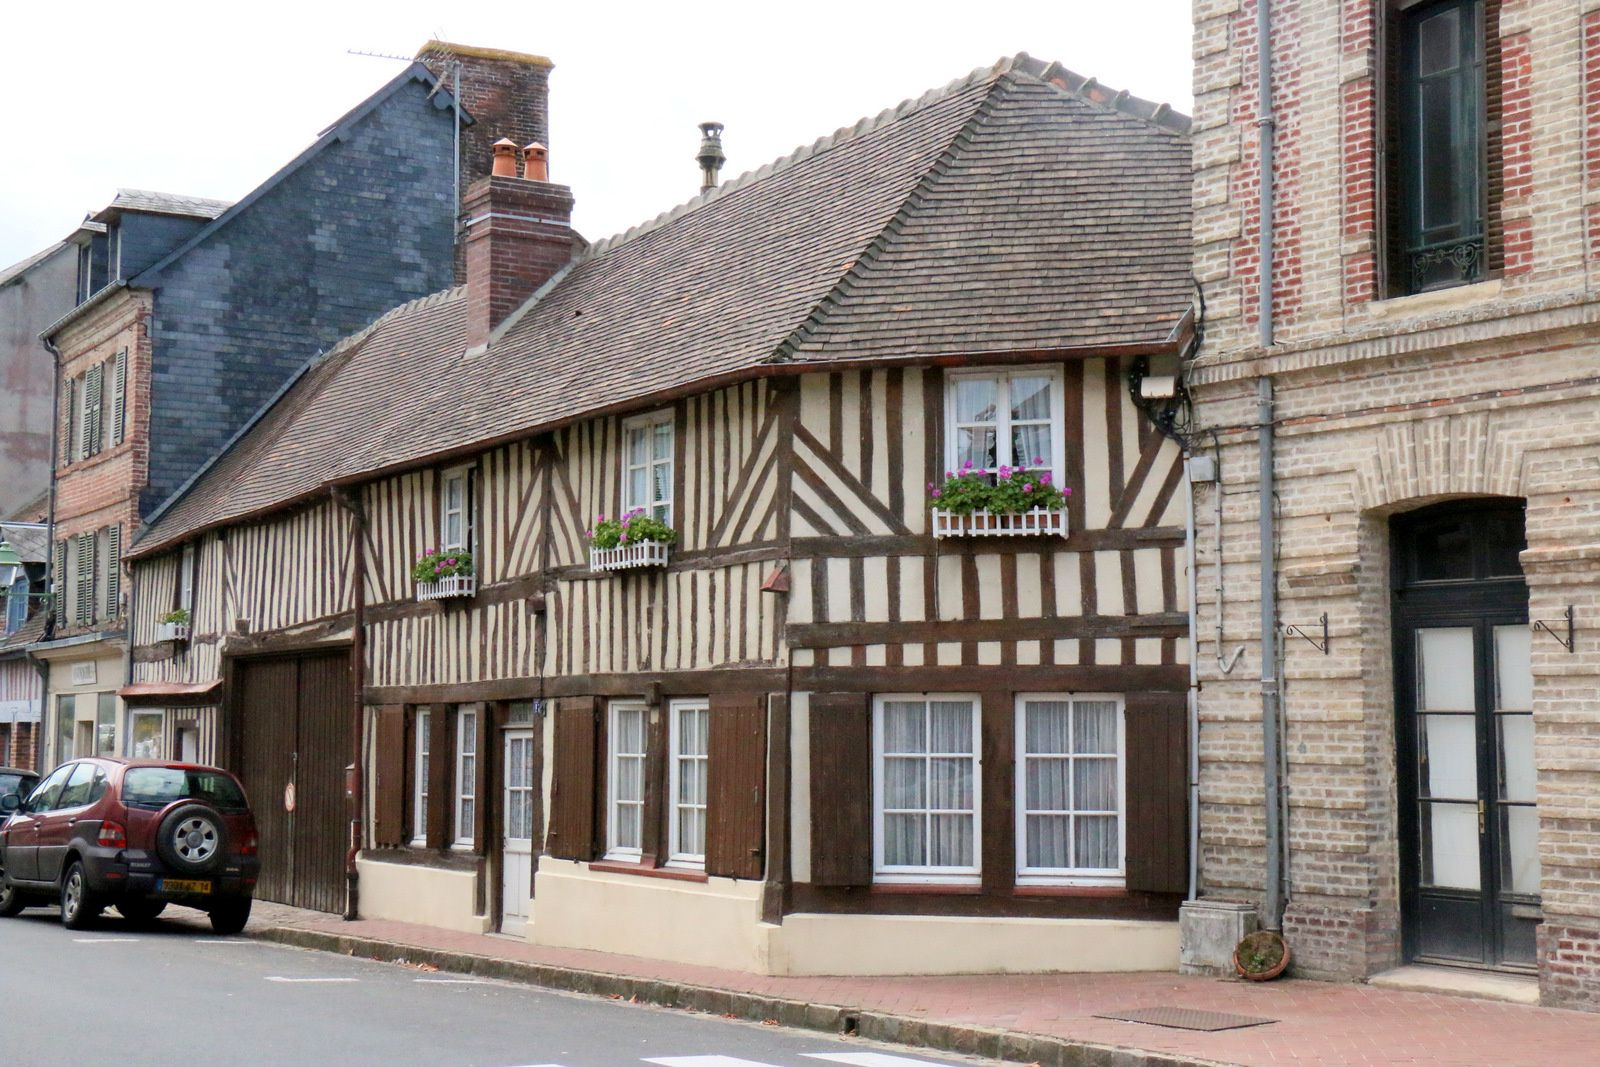 Maisons à colombages (2/2), Beaumont-en-Auge